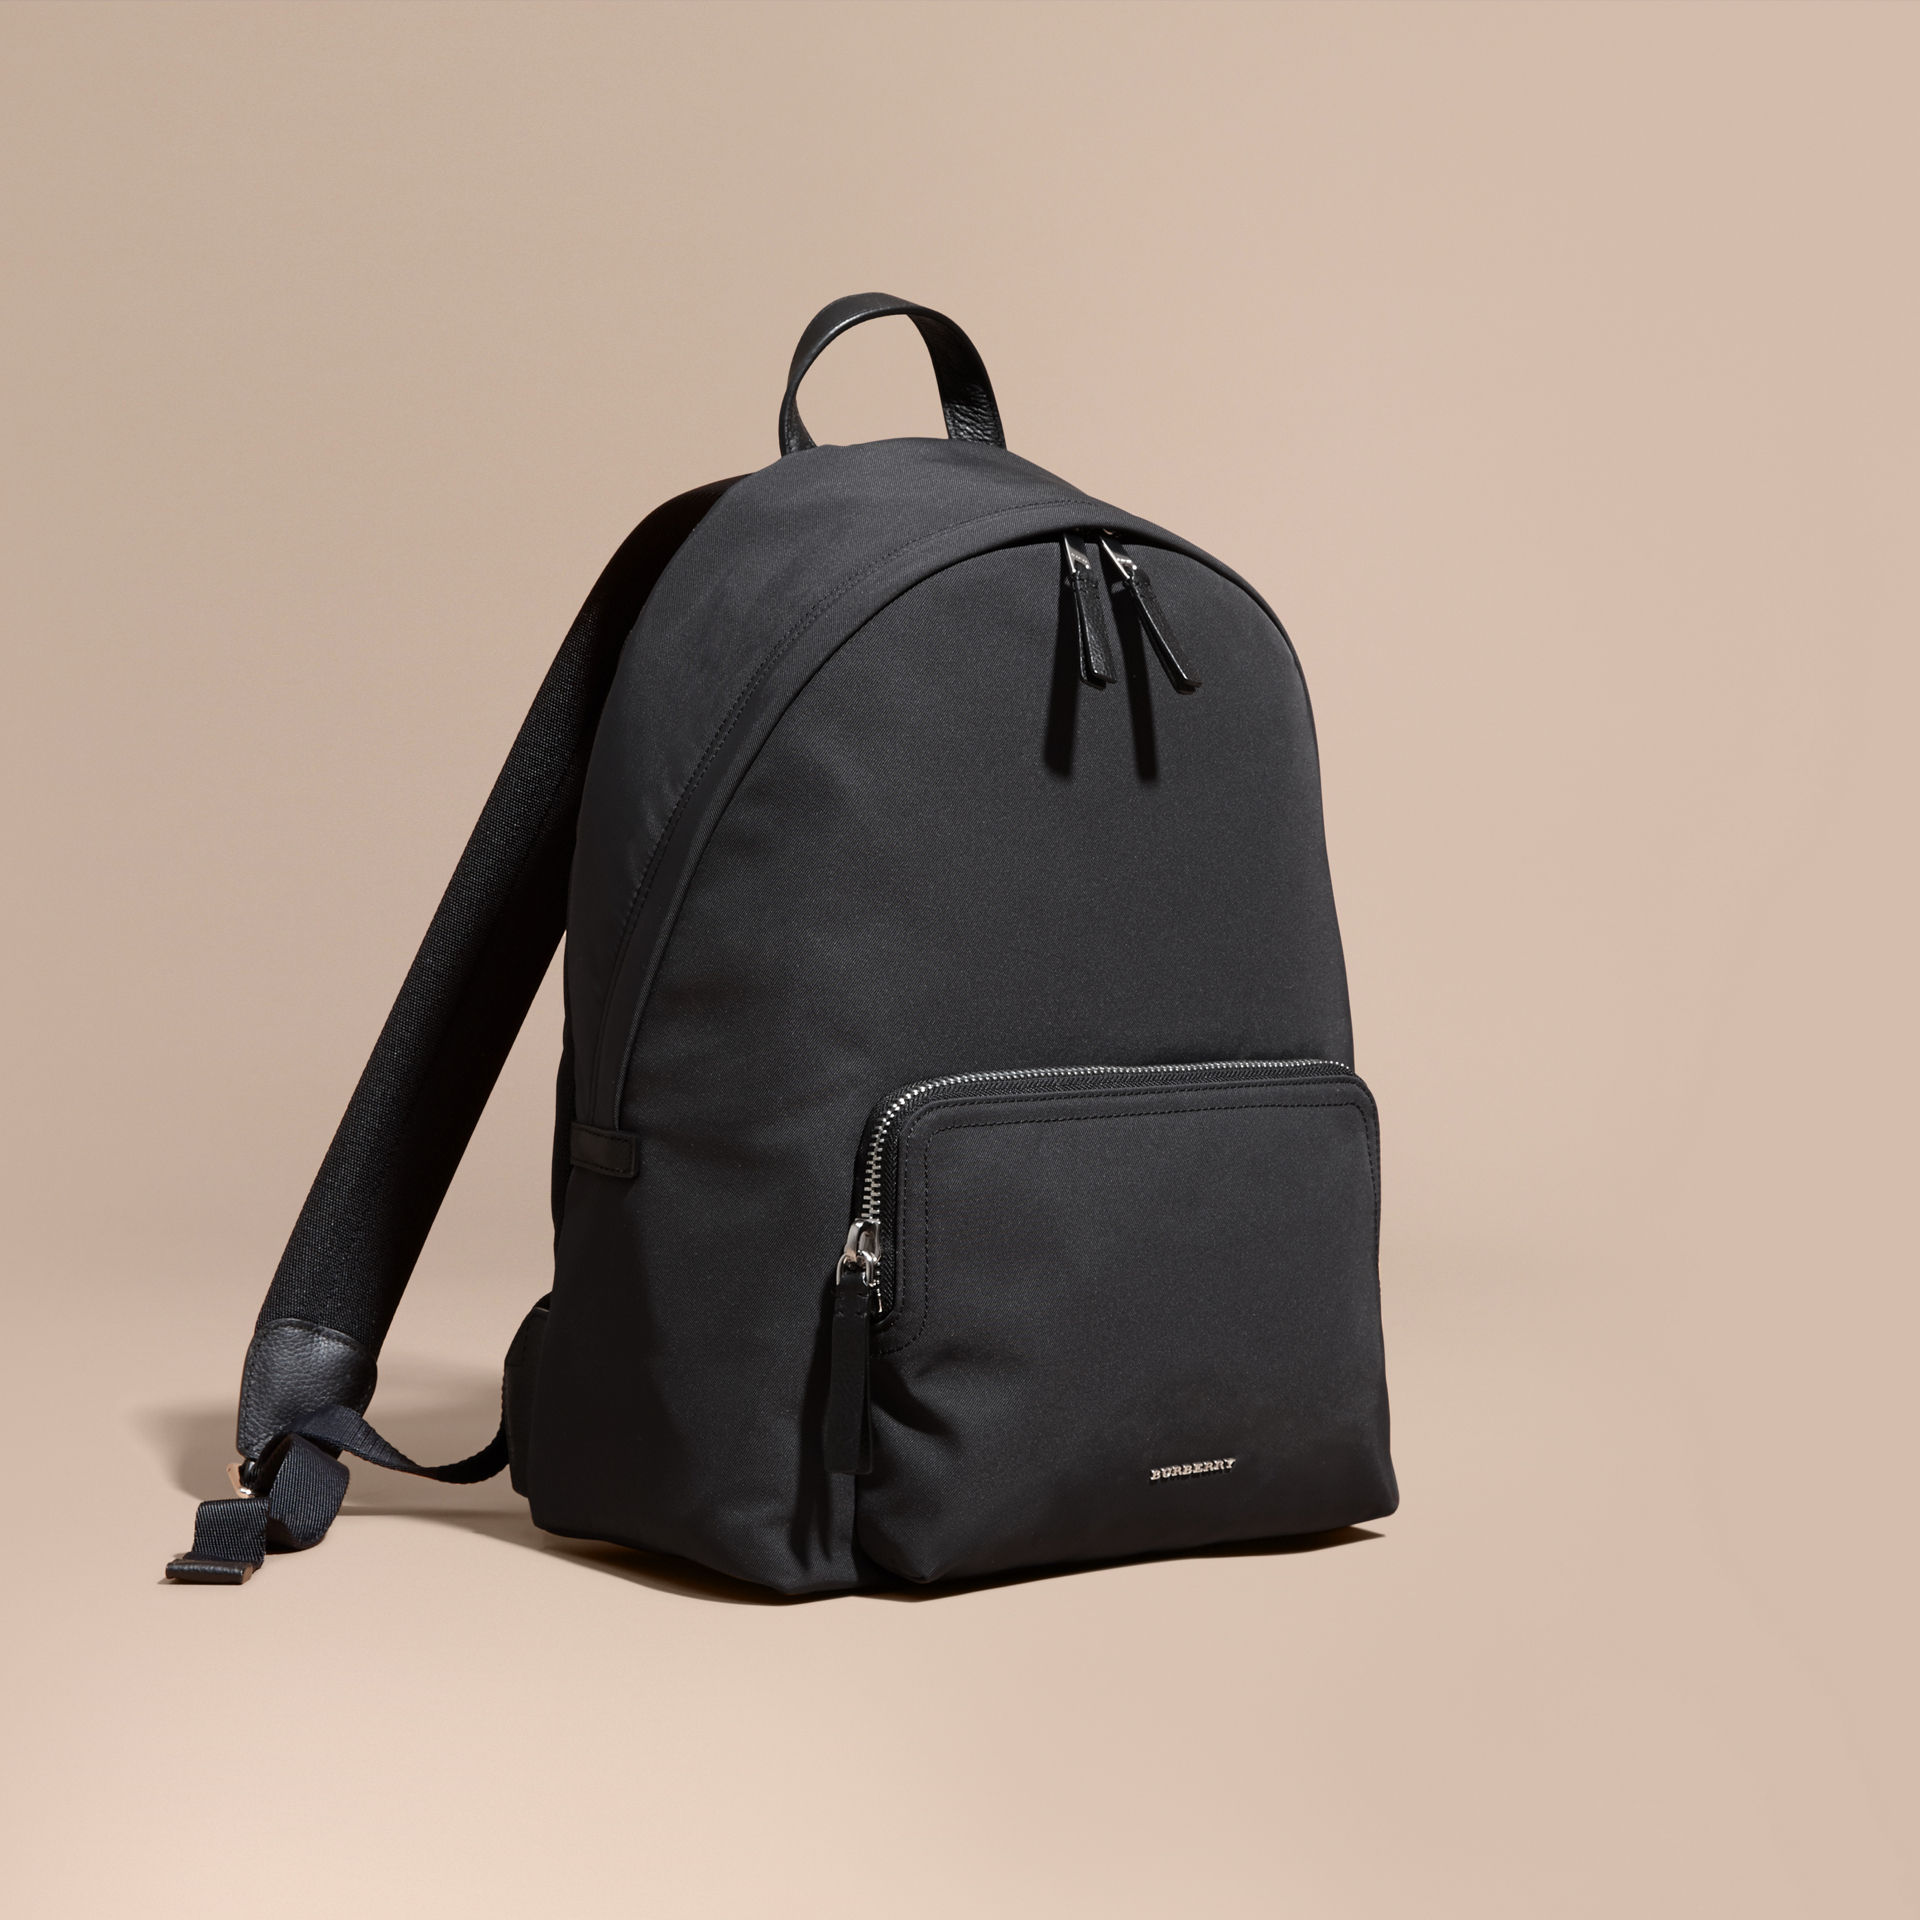 Burberry Black Leather Trim Technical Backpack